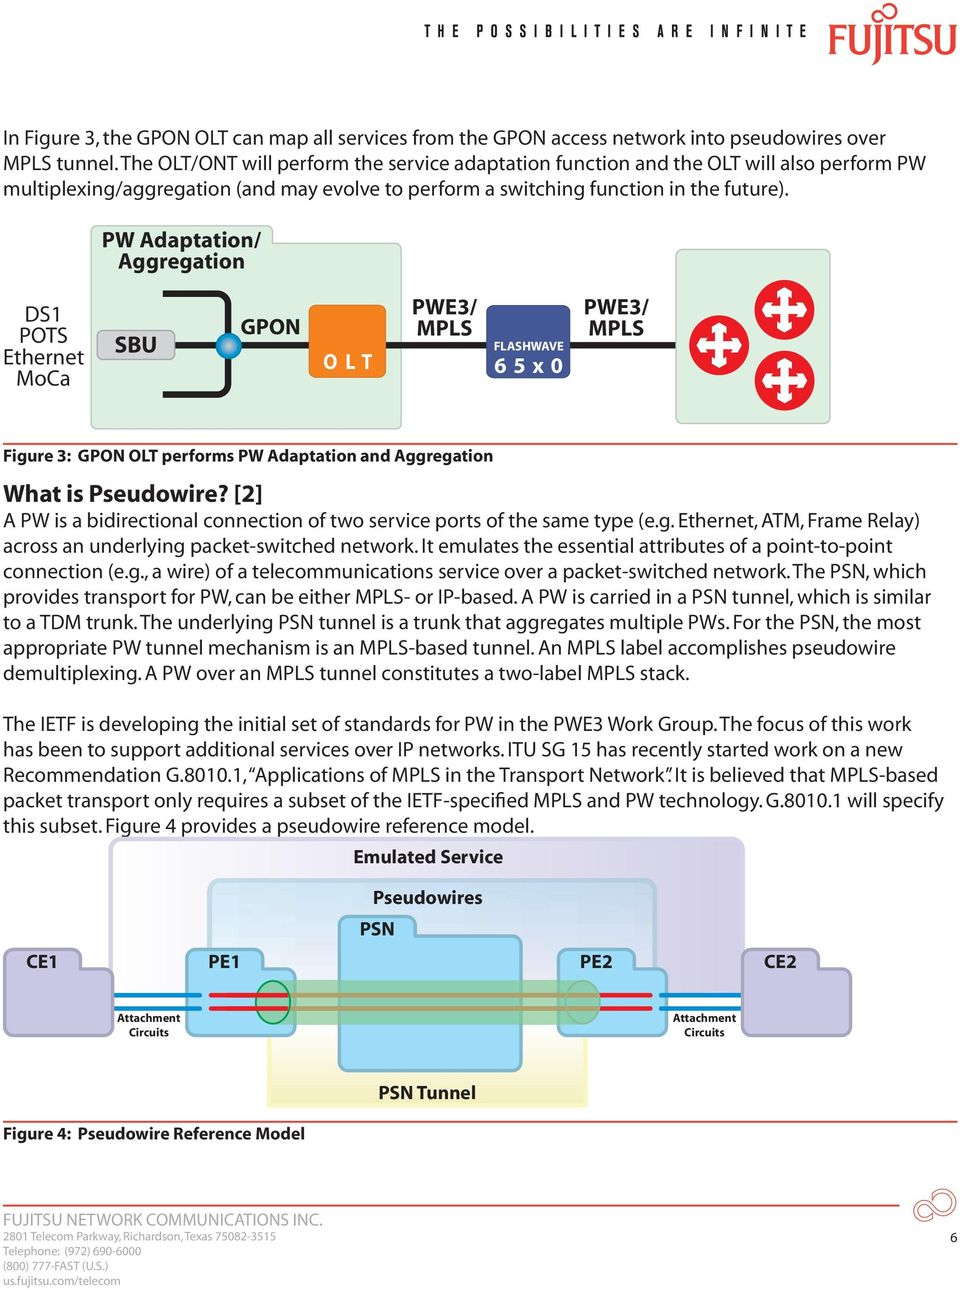 PW Adaptation/ Aggregation DS1 POTS Ethernet MoCa SBU GPON O L T PWE3/ FLASHWAVE 6 5 x 0 PWE3/ Figure 3: GPON OLT performs PW Adaptation and Aggregation What is Pseudowire?